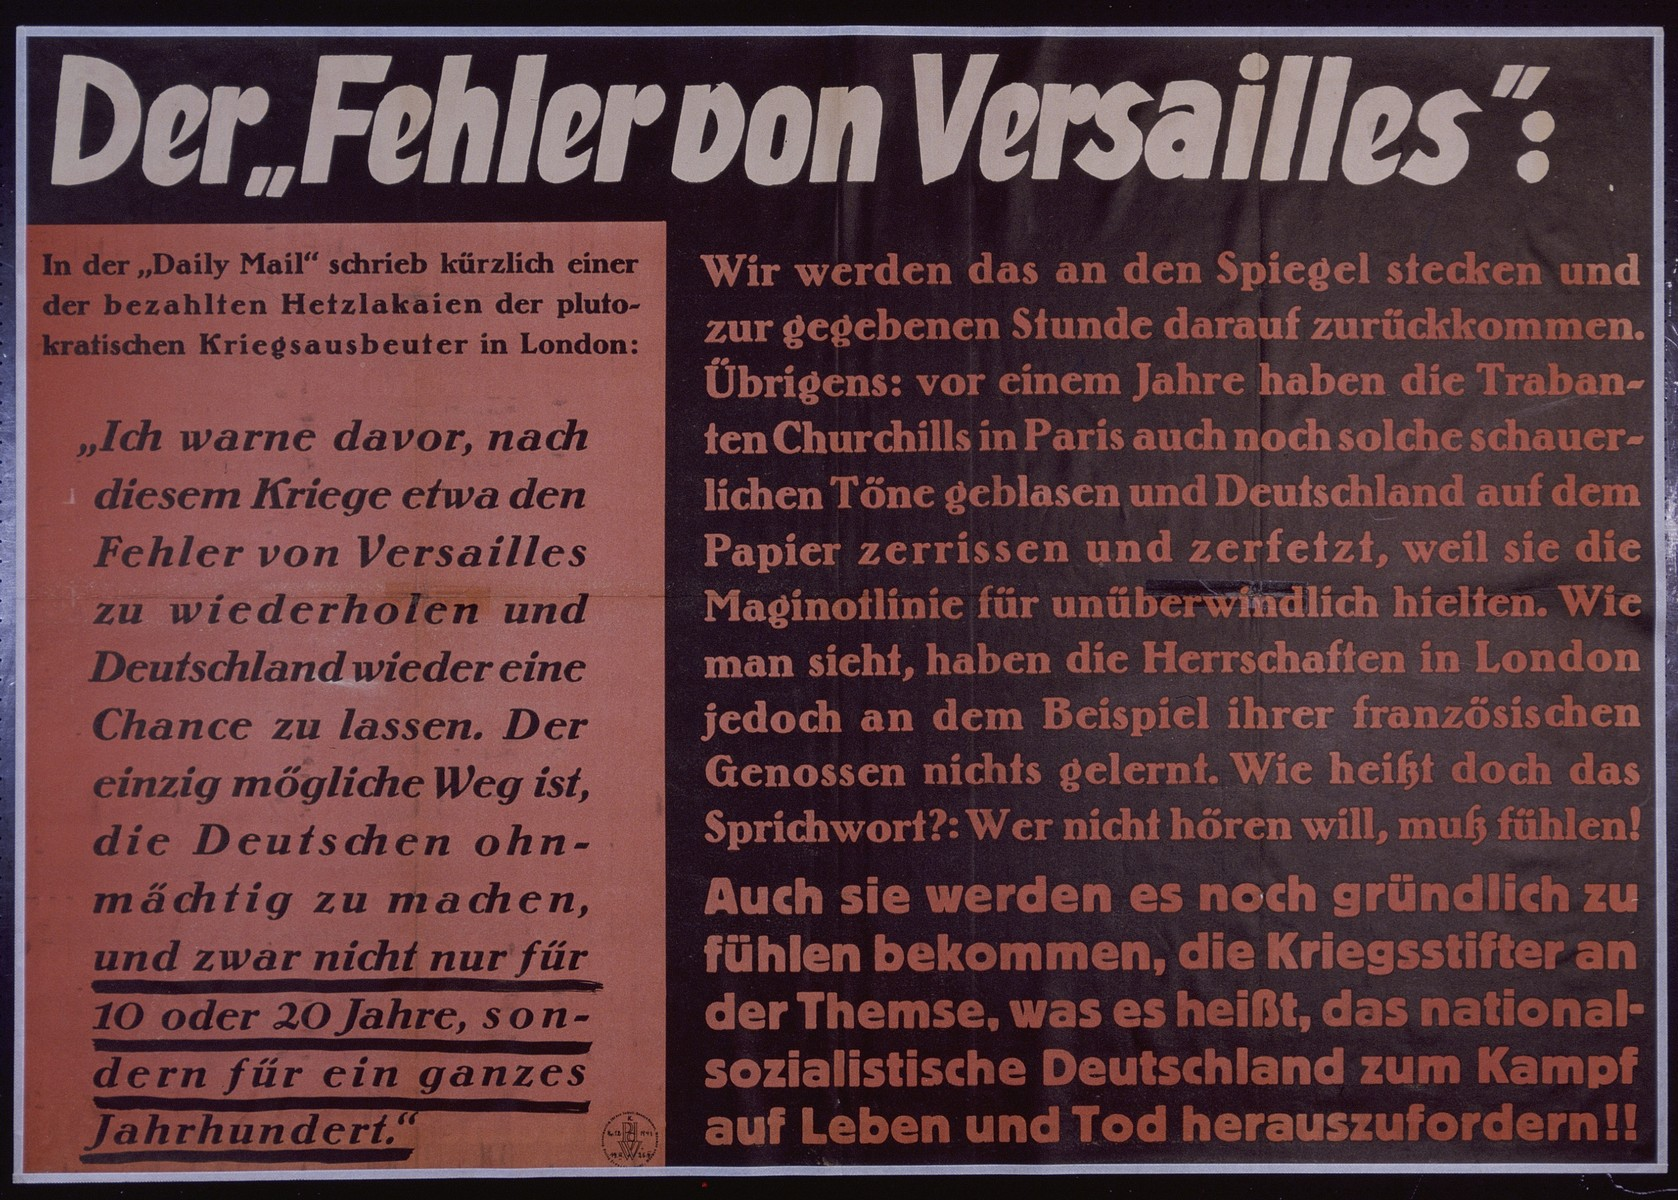 """Nazi propaganda poster entitled, """"Der 'Fehler von Versailles',"""" issued by the """"Parole der Woche,"""" a wall newspaper (Wandzeitung) published by the National Socialist Party propaganda office in Munich."""